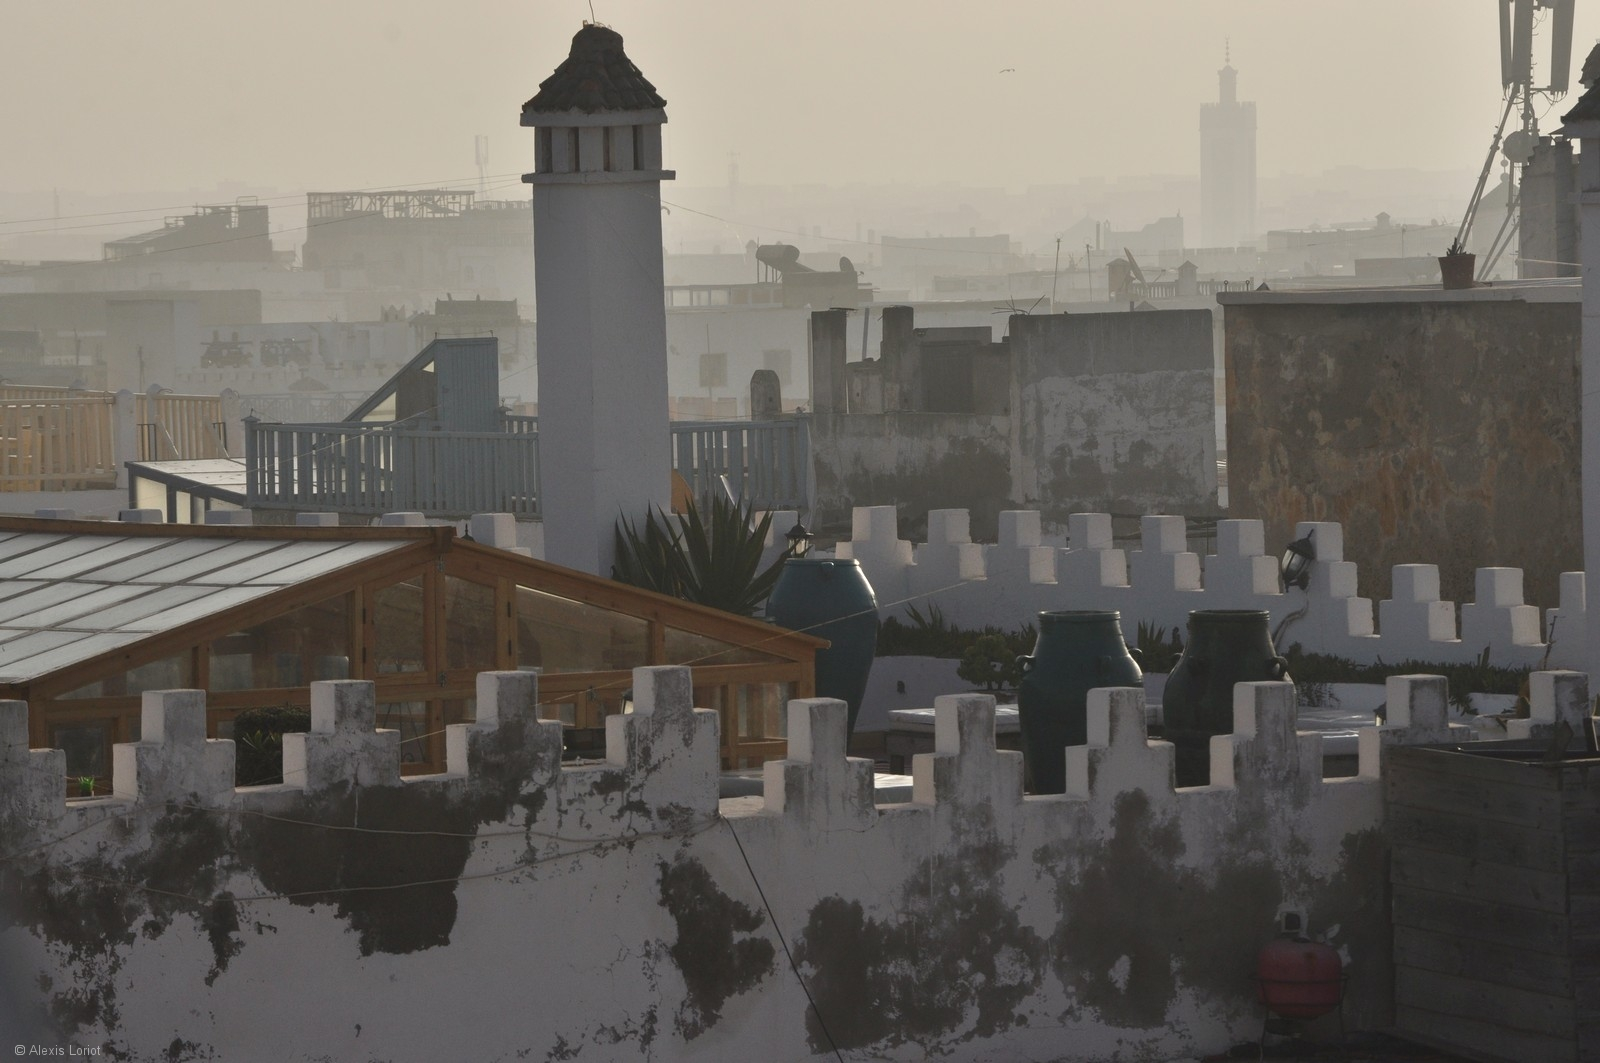 essaouira_photo-AlexisLoriot_04